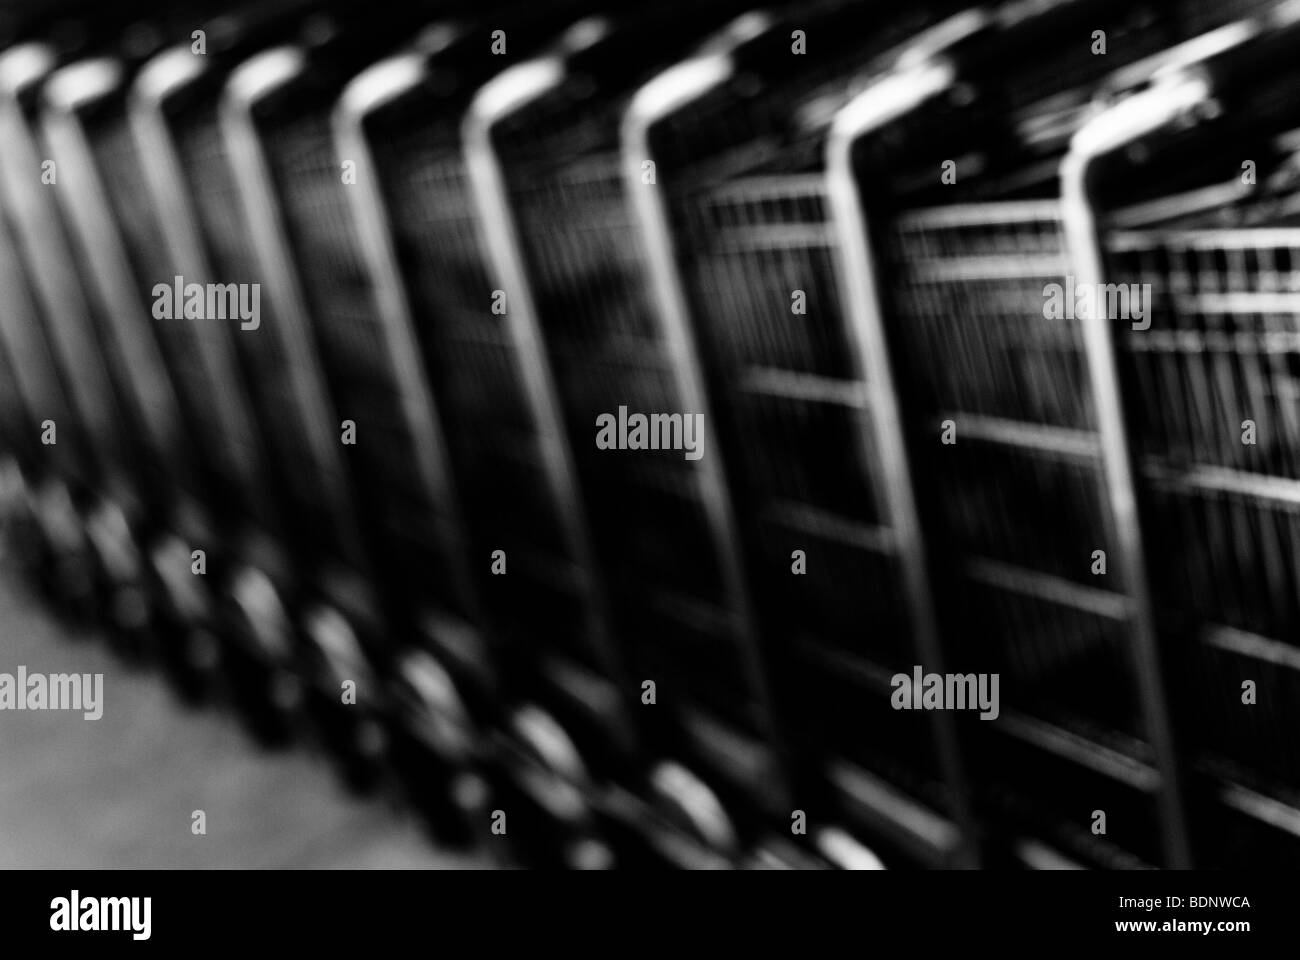 A row of shopping trolleys - Stock Image